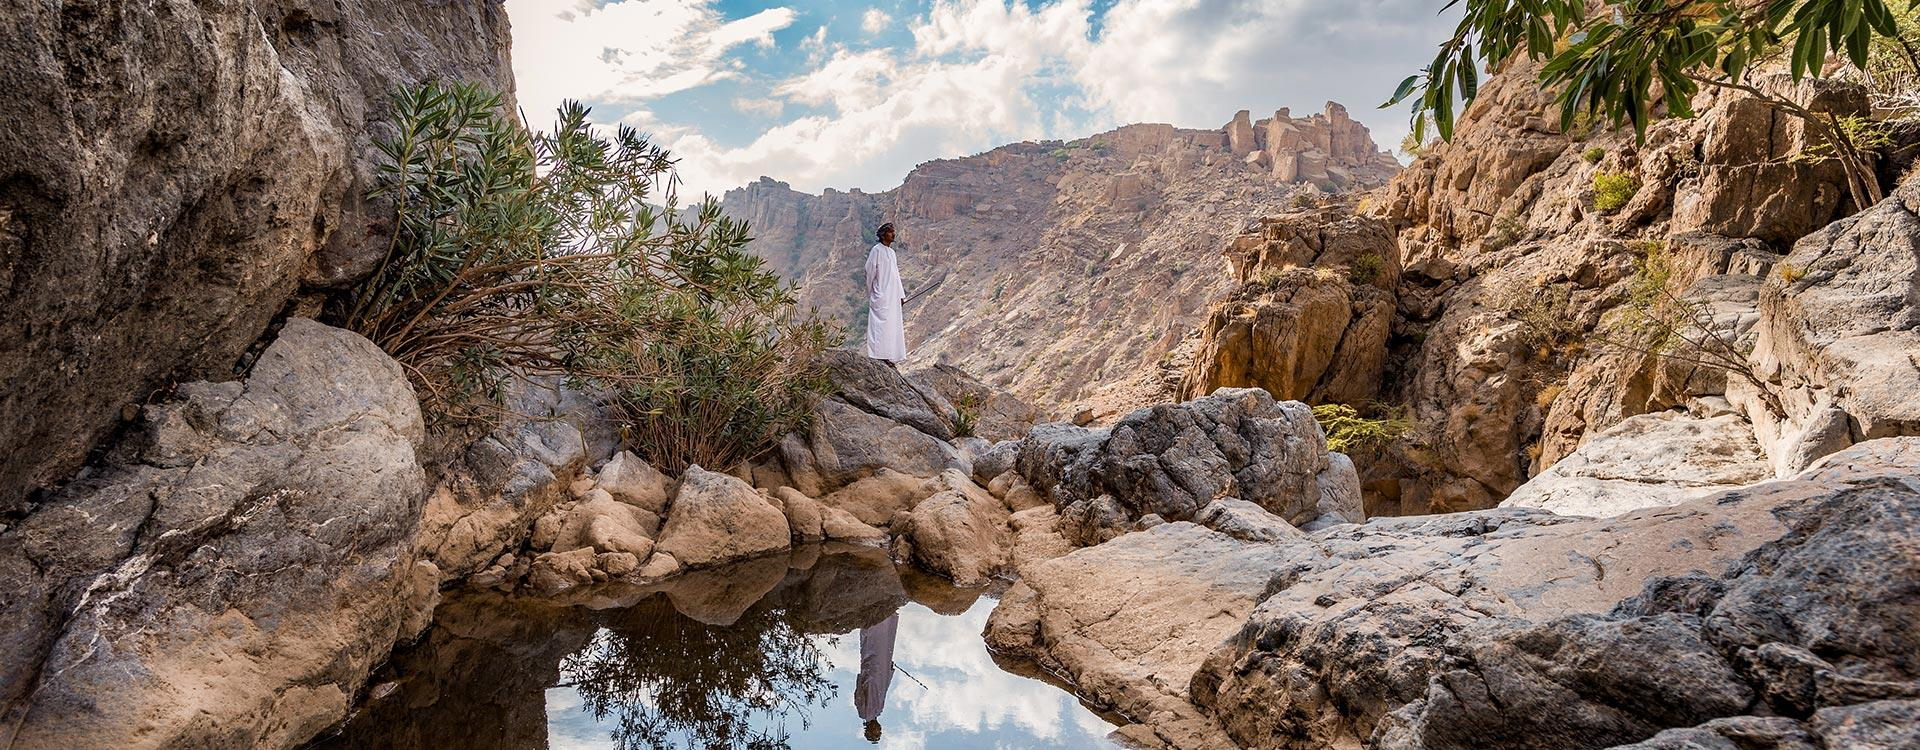 AN-Jabal-Al-Akhdar _ Journey-to-Cold-Valley